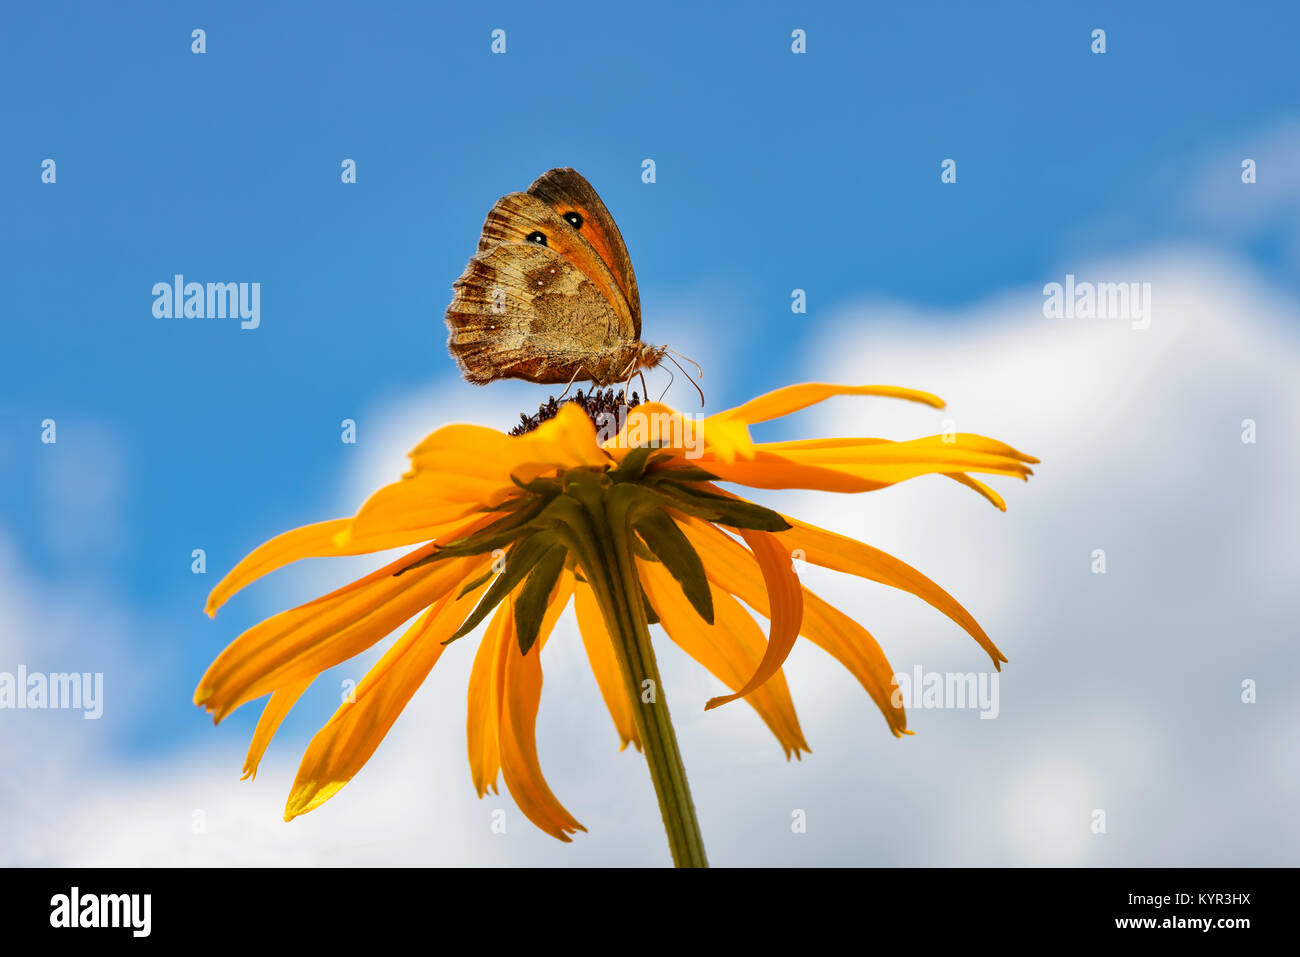 Butterfly Pyronia tithonus, also called Gatekeeper or Hedge brown, feeding on nectar from a flowering orange coneflower - Stock Image